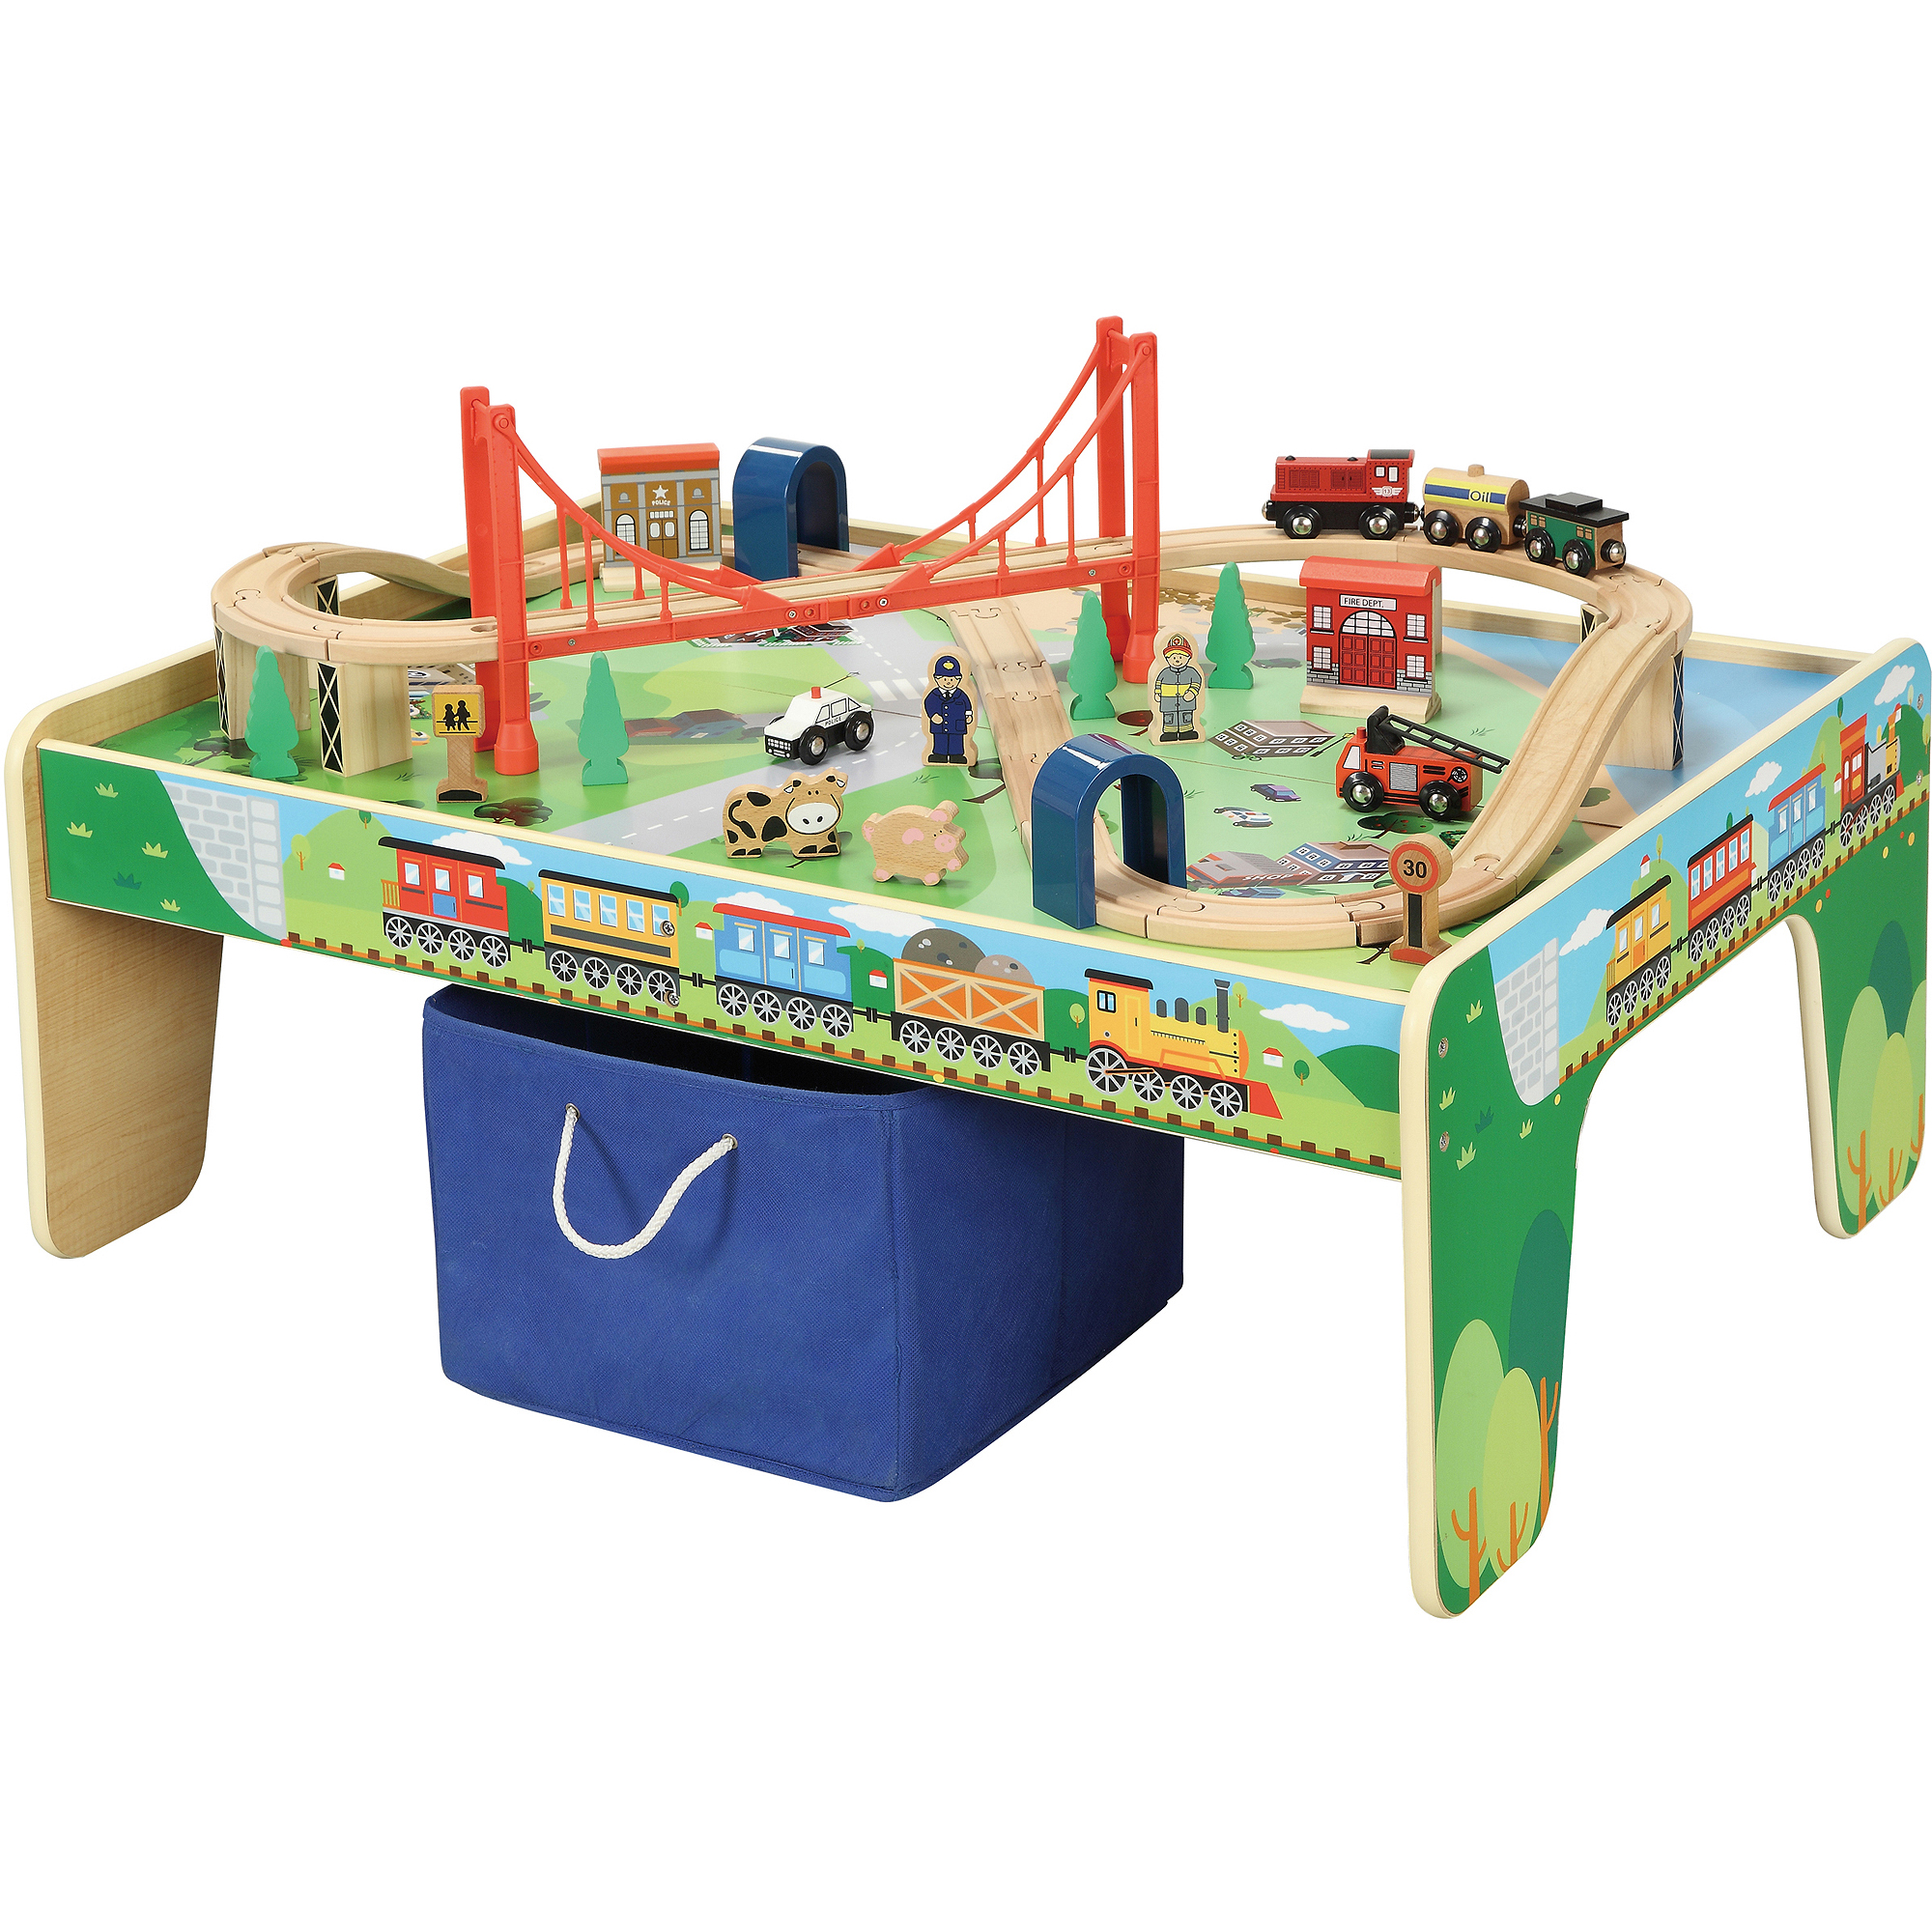 sc 1 st  Walmart & Wooden 50-Piece Train Set with Small Table Only At Walmart - Walmart.com